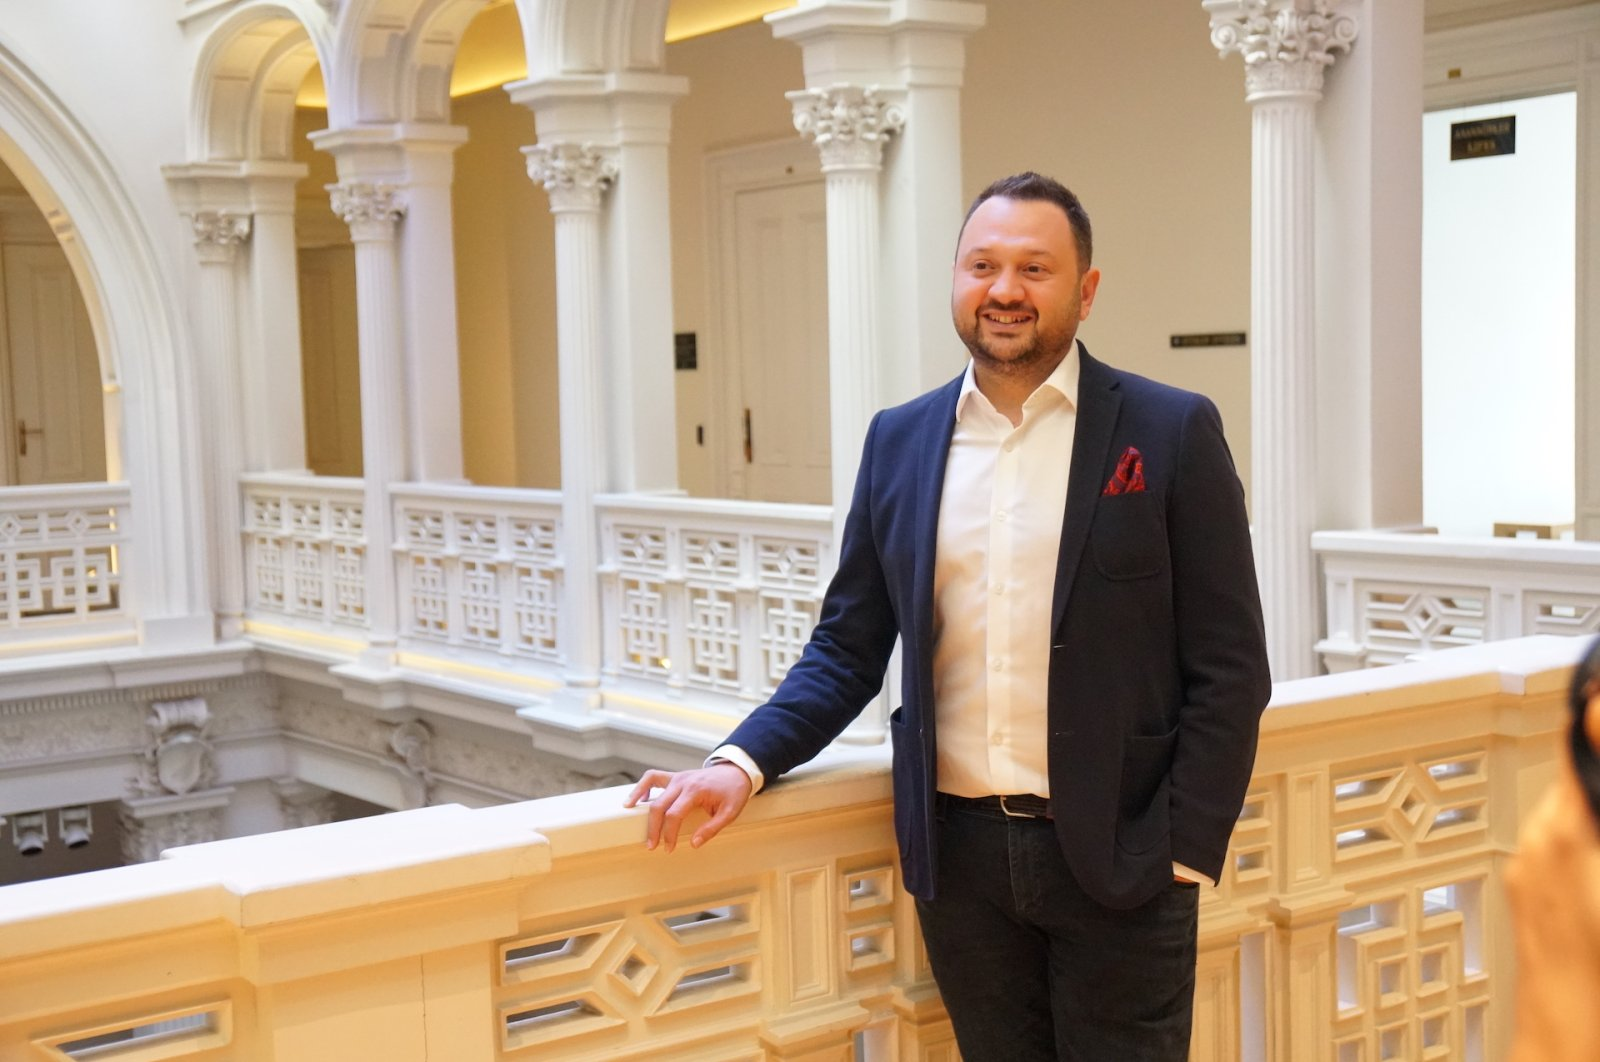 """""""With the Figogaranti model, we are now starting to produce Figoskors with electronic invoice and electronic ledger data of companies. We will enable Figoskor SMEs to access cash from banks on more favorable terms with objective criteria,"""" Koray Bahar, the founder of Figopara, said. (Photo courtesy of Figopara)"""